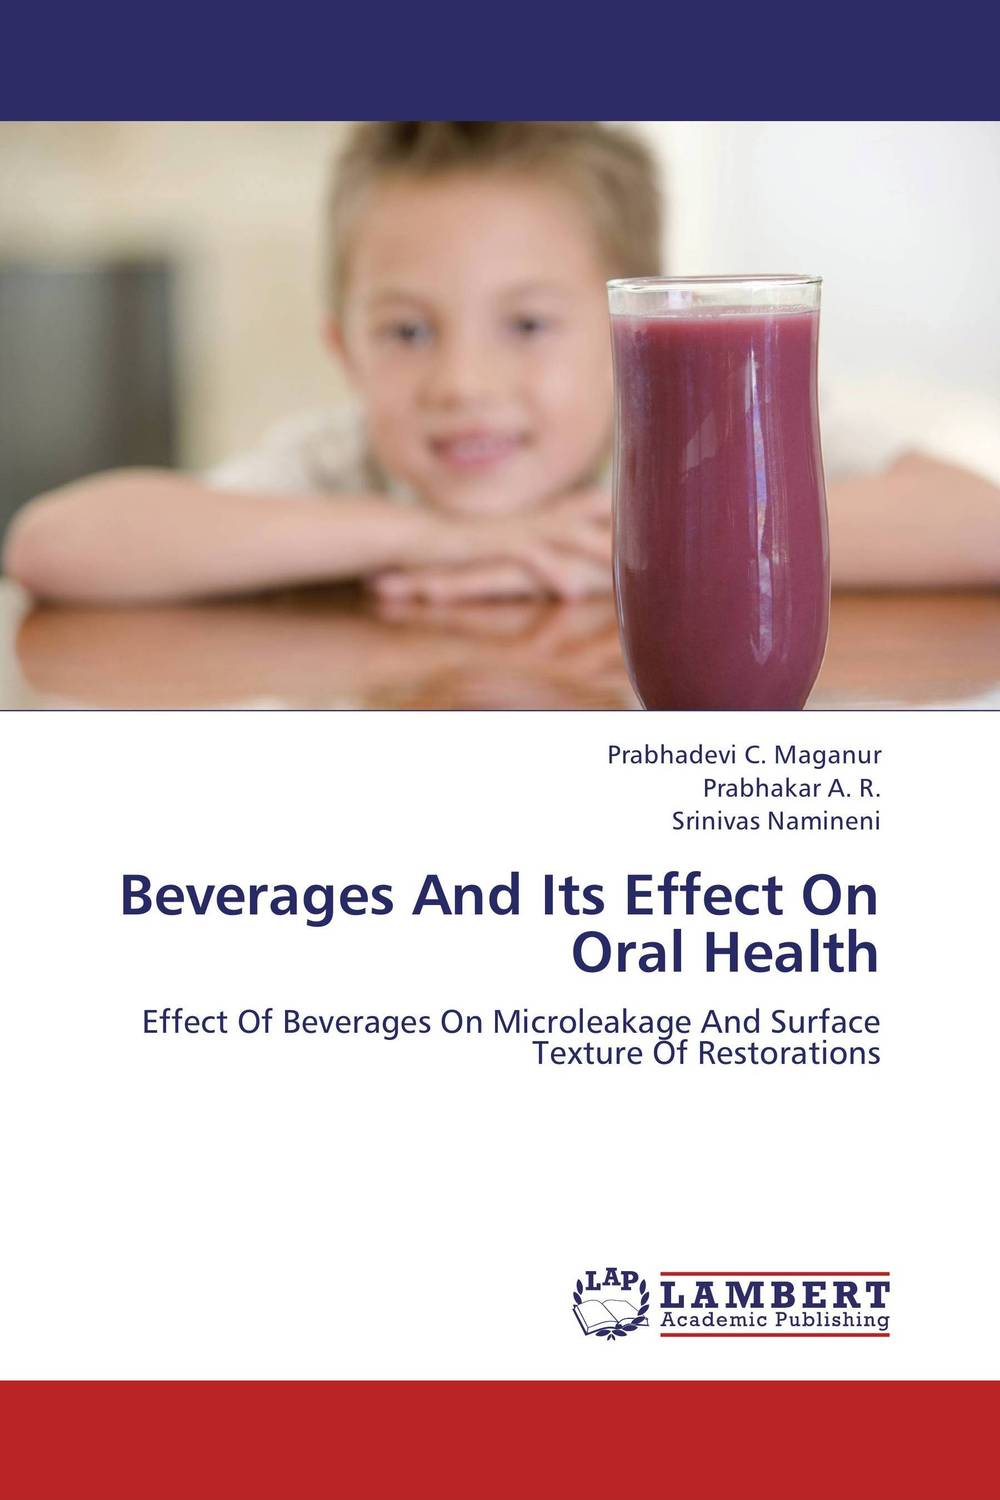 Beverages And Its Effect On Oral Health simranjeet kaur amaninder singh and pranav gupta surface properties of dental materials under simulated tooth wear